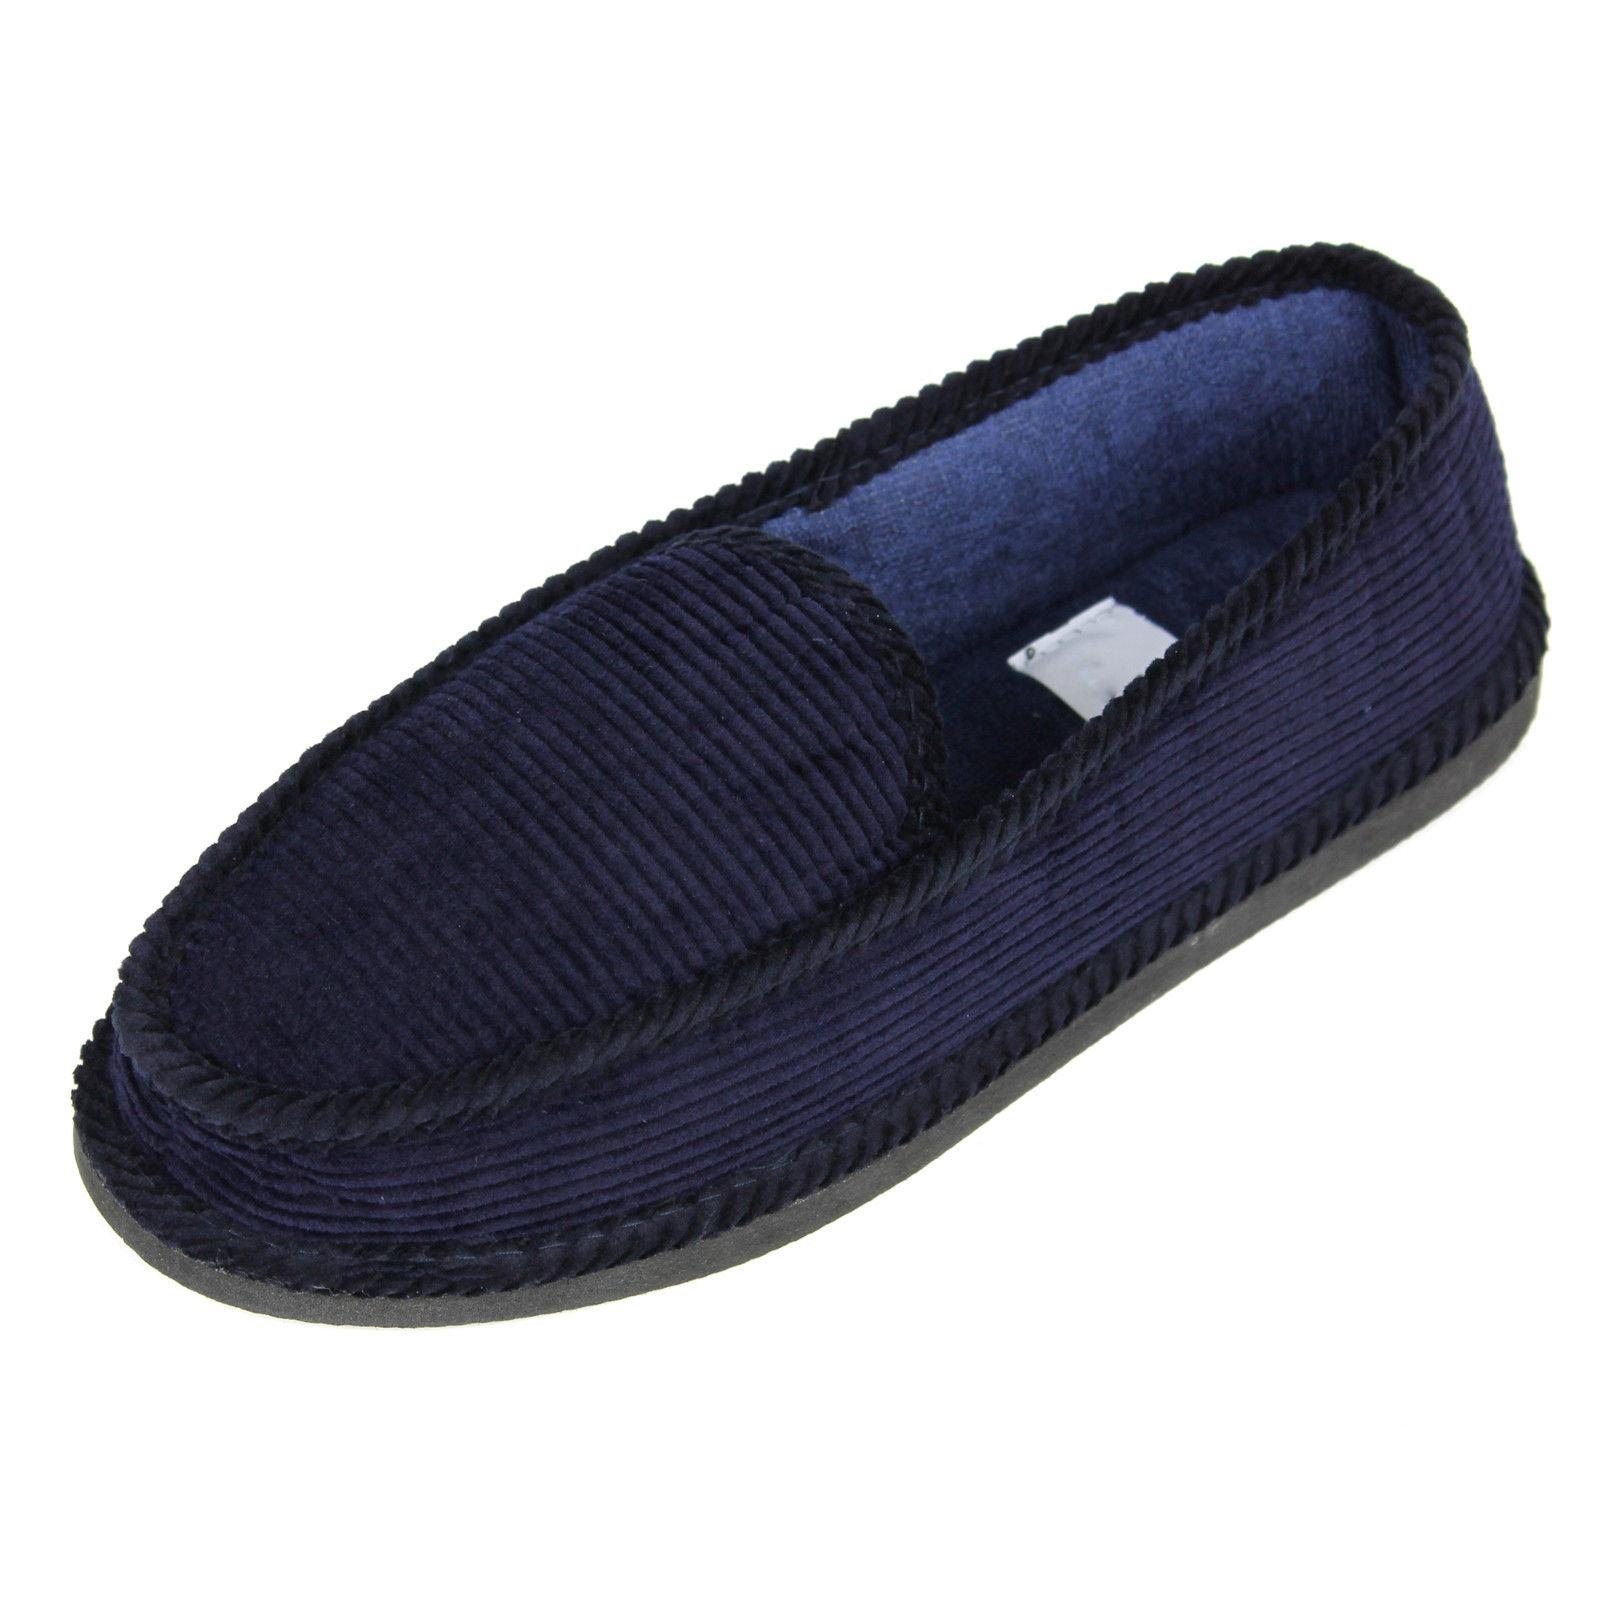 New Slippers Corduroy Moccasin Slip-on Men Shoes